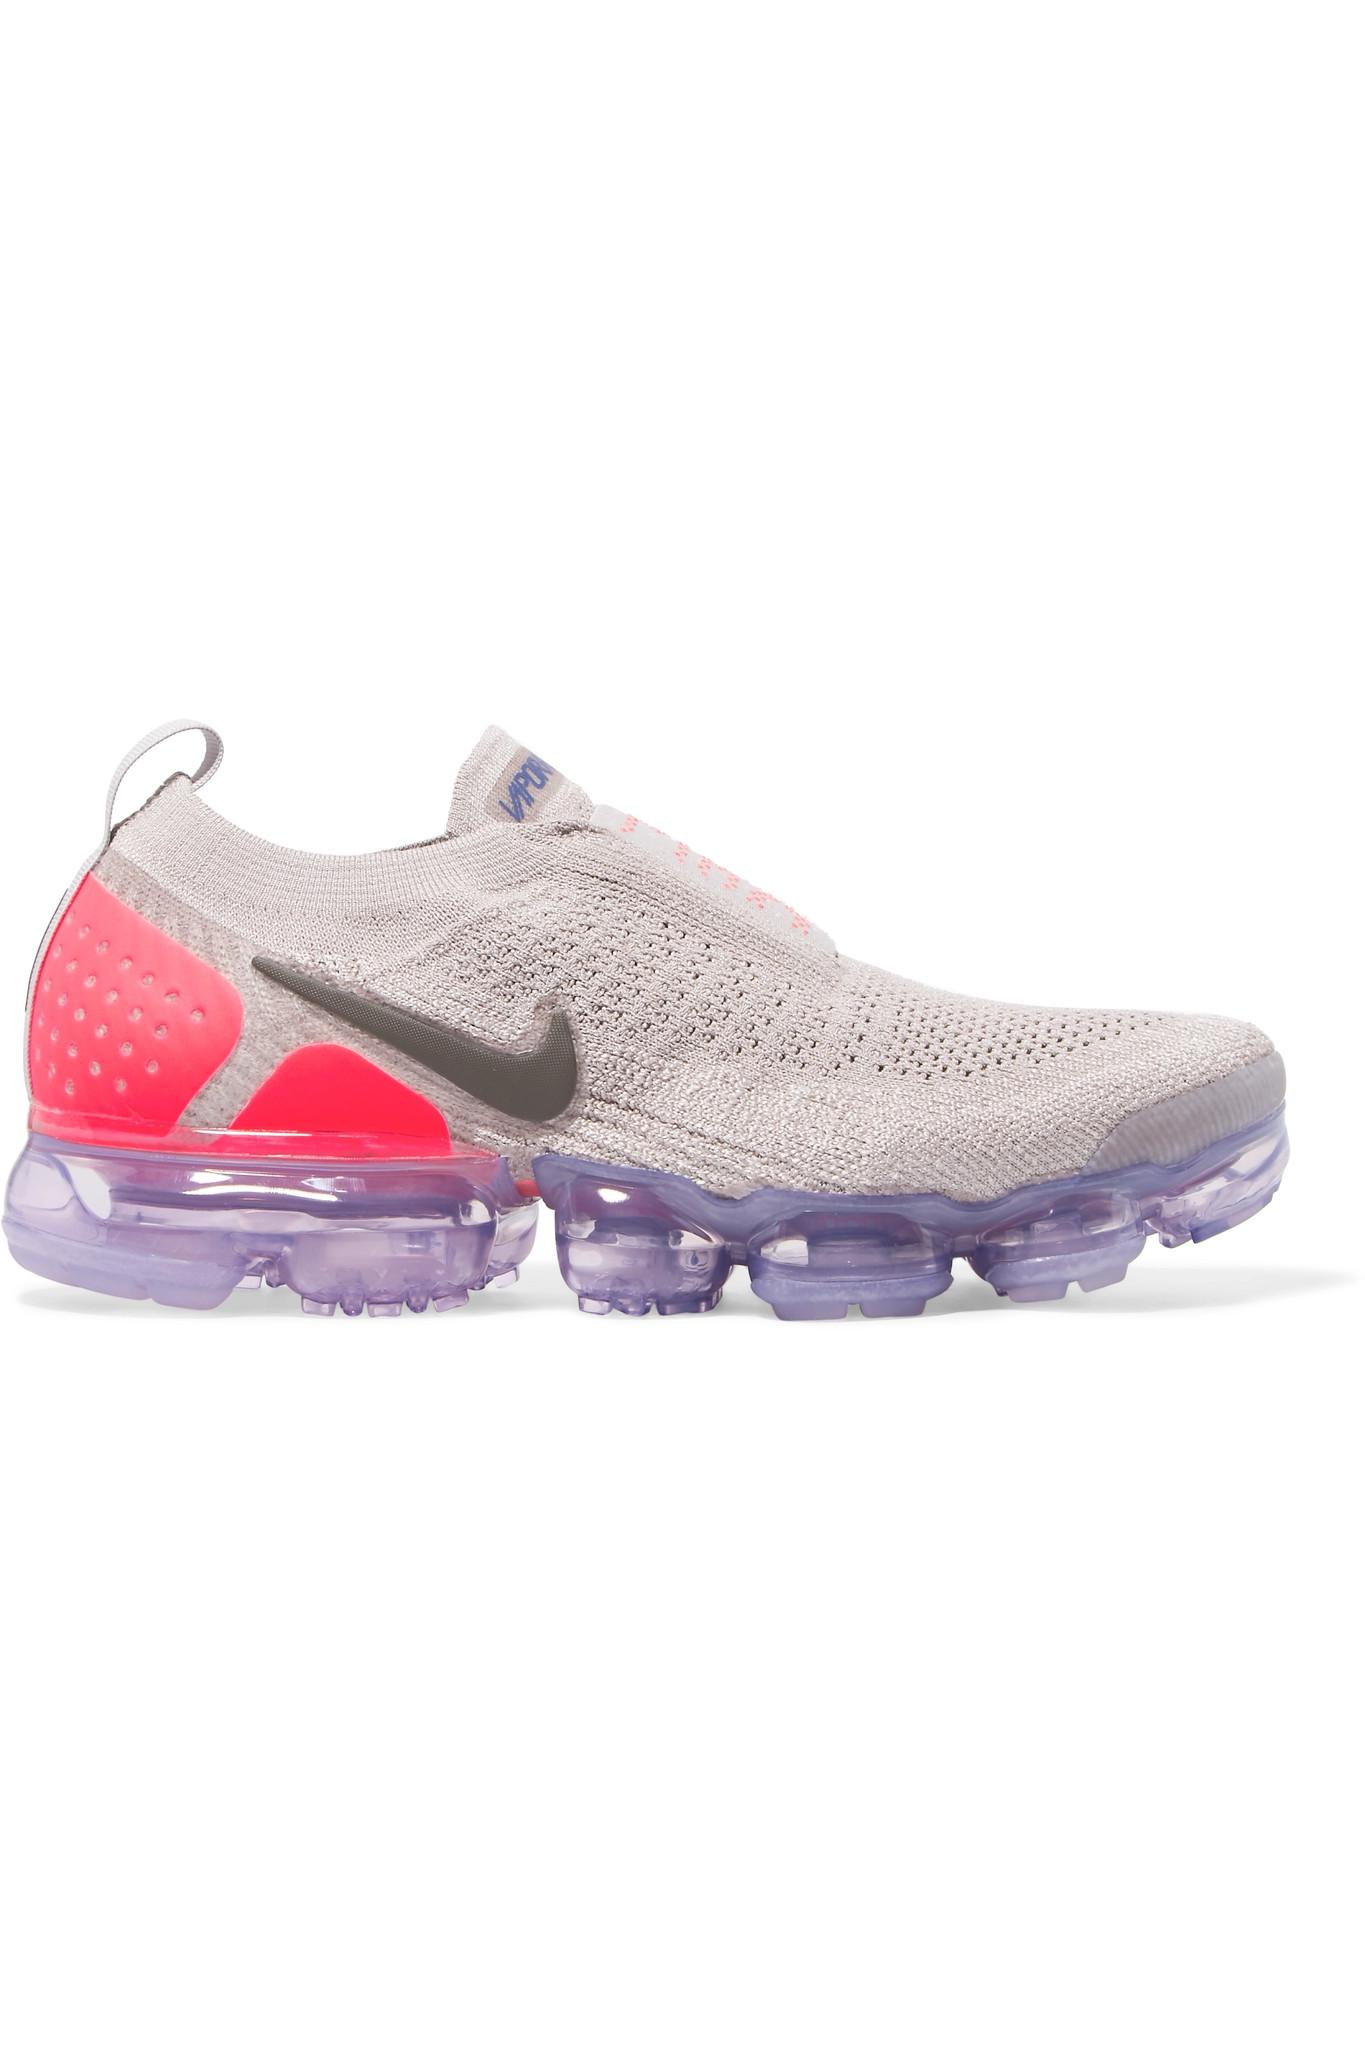 Taupe Air vapormax fk moc 2 sneakers Nike oWInVgG7U